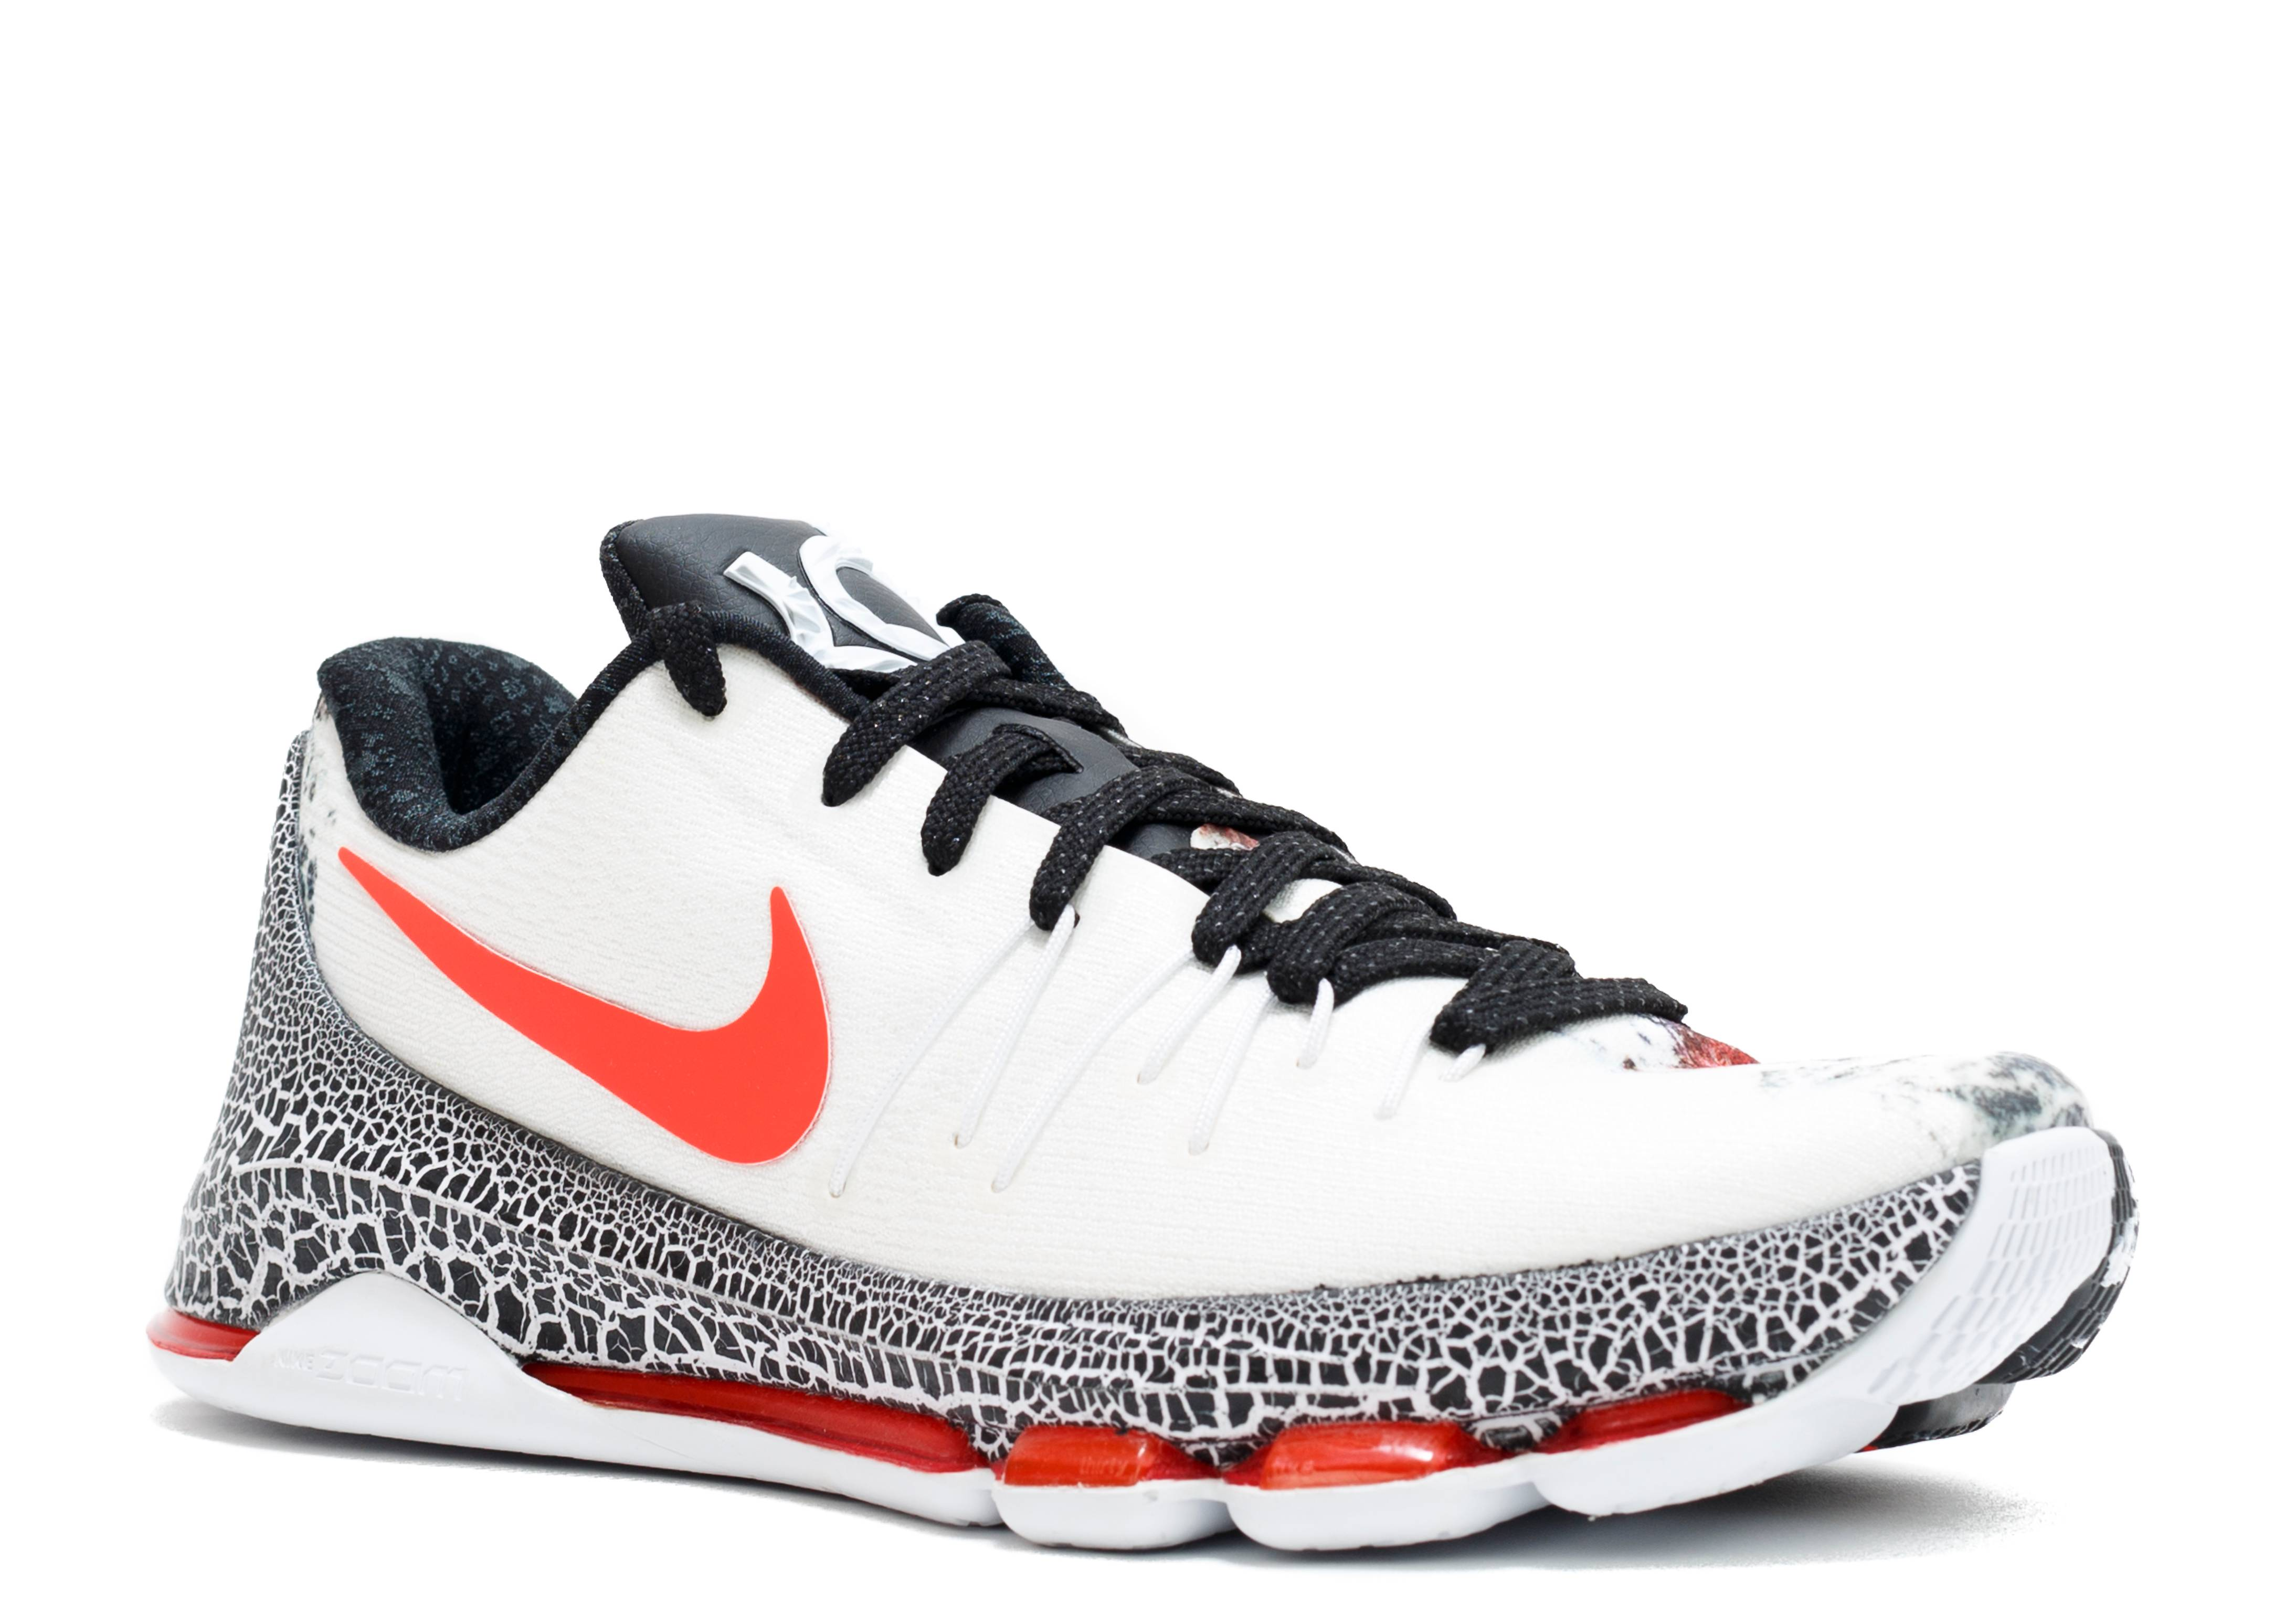 Kd 8 Xmas - Nike - 822948 106 - white/black-bright crimson | Flight Club